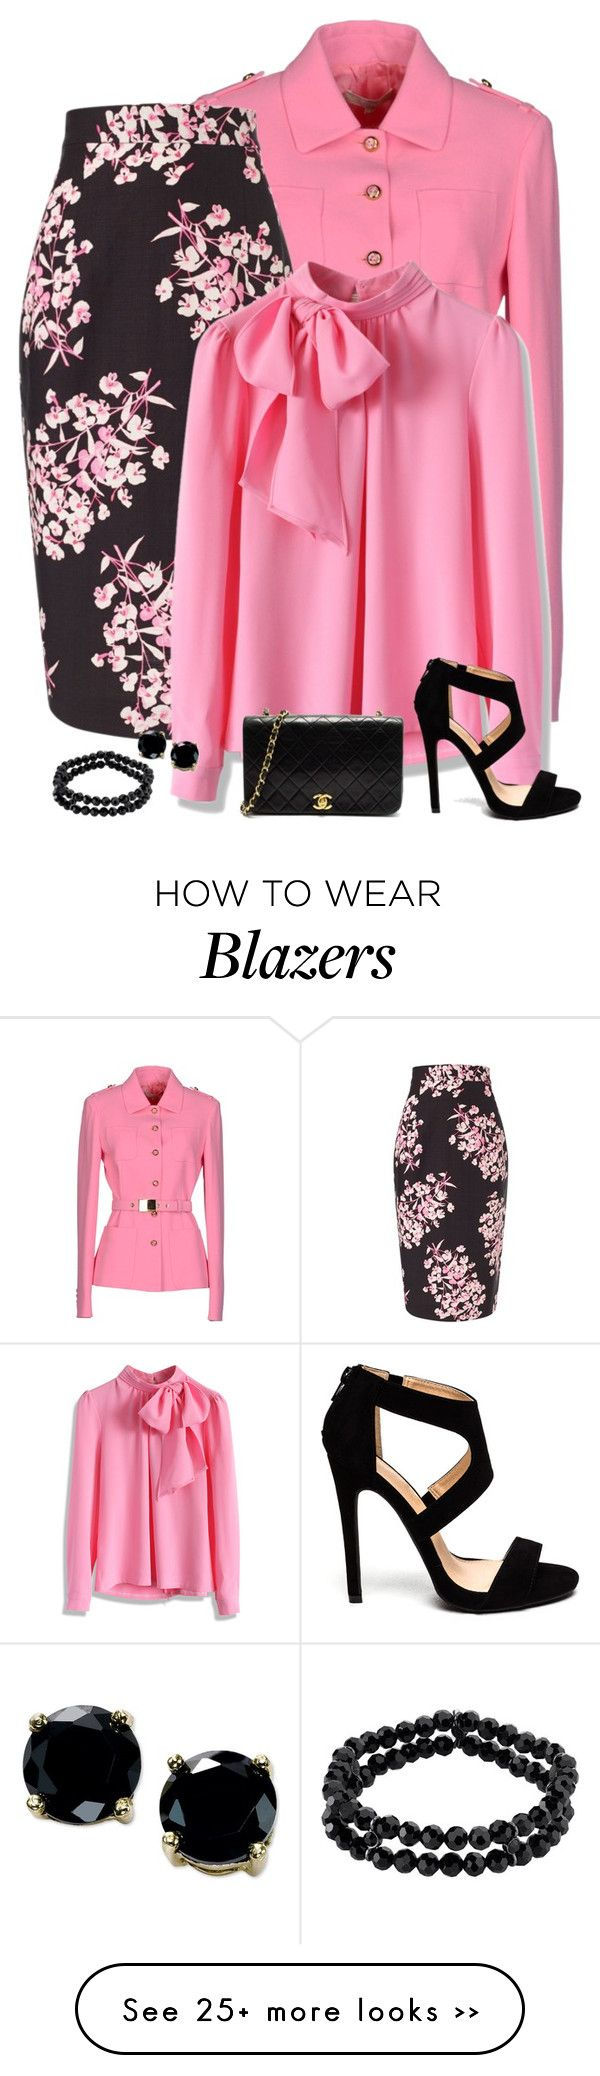 """classic pink & black"" by divacrafts on Polyvore"